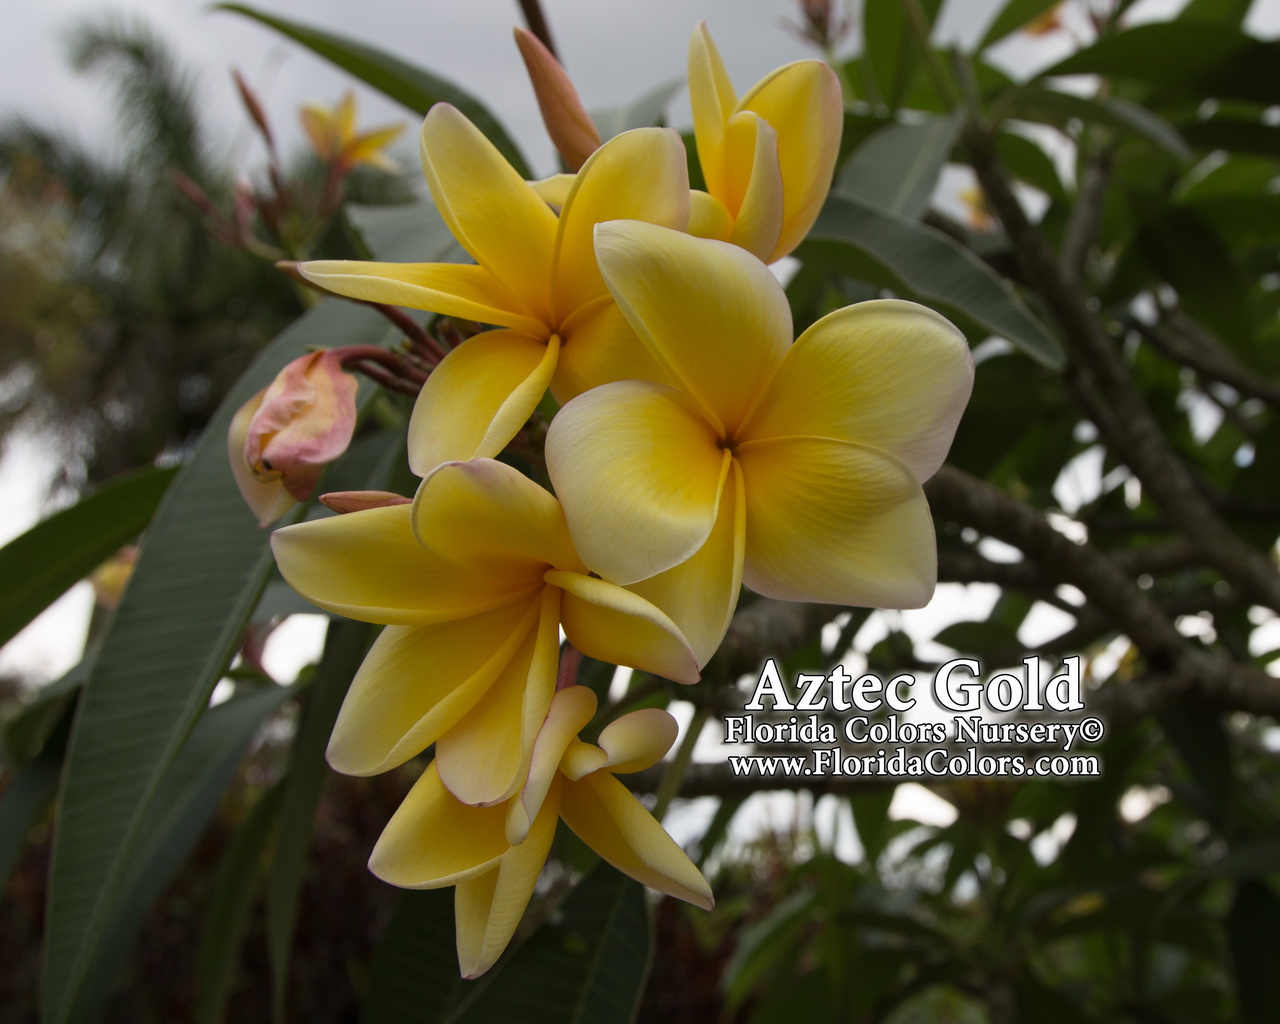 Aztec Gold (rooted) Plumeria